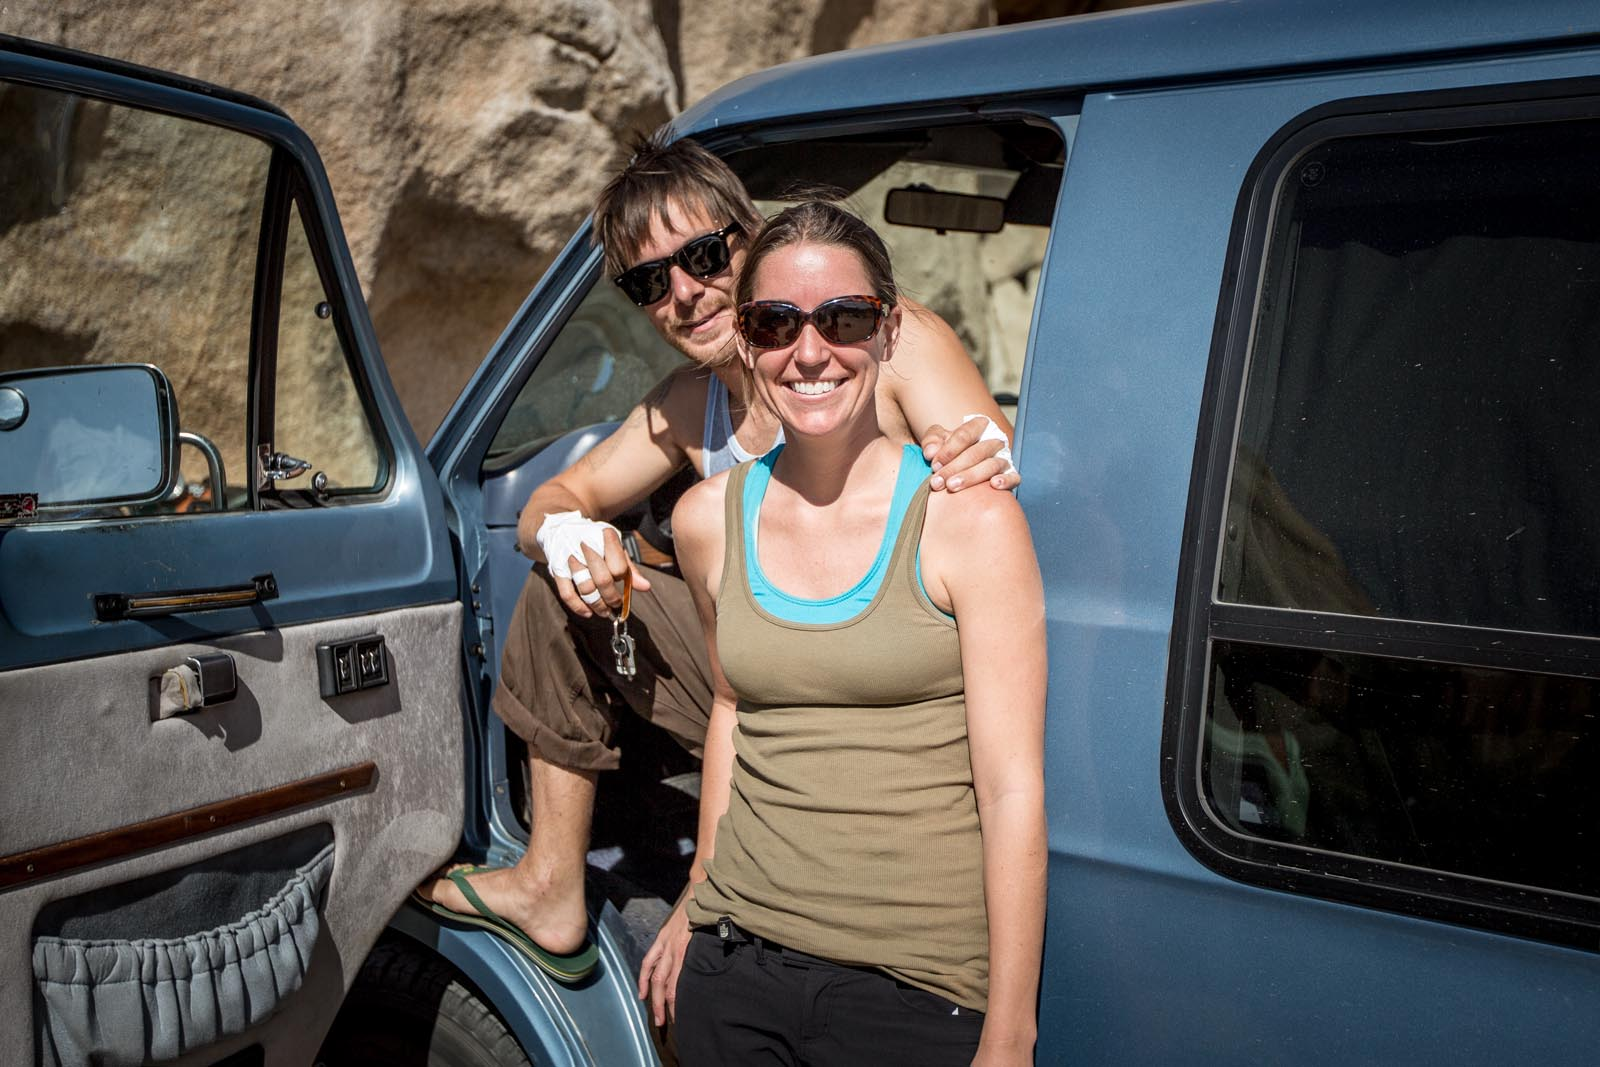 Corey and Autumn are amazing!  They are traveling by van for 6 months through the wild west!